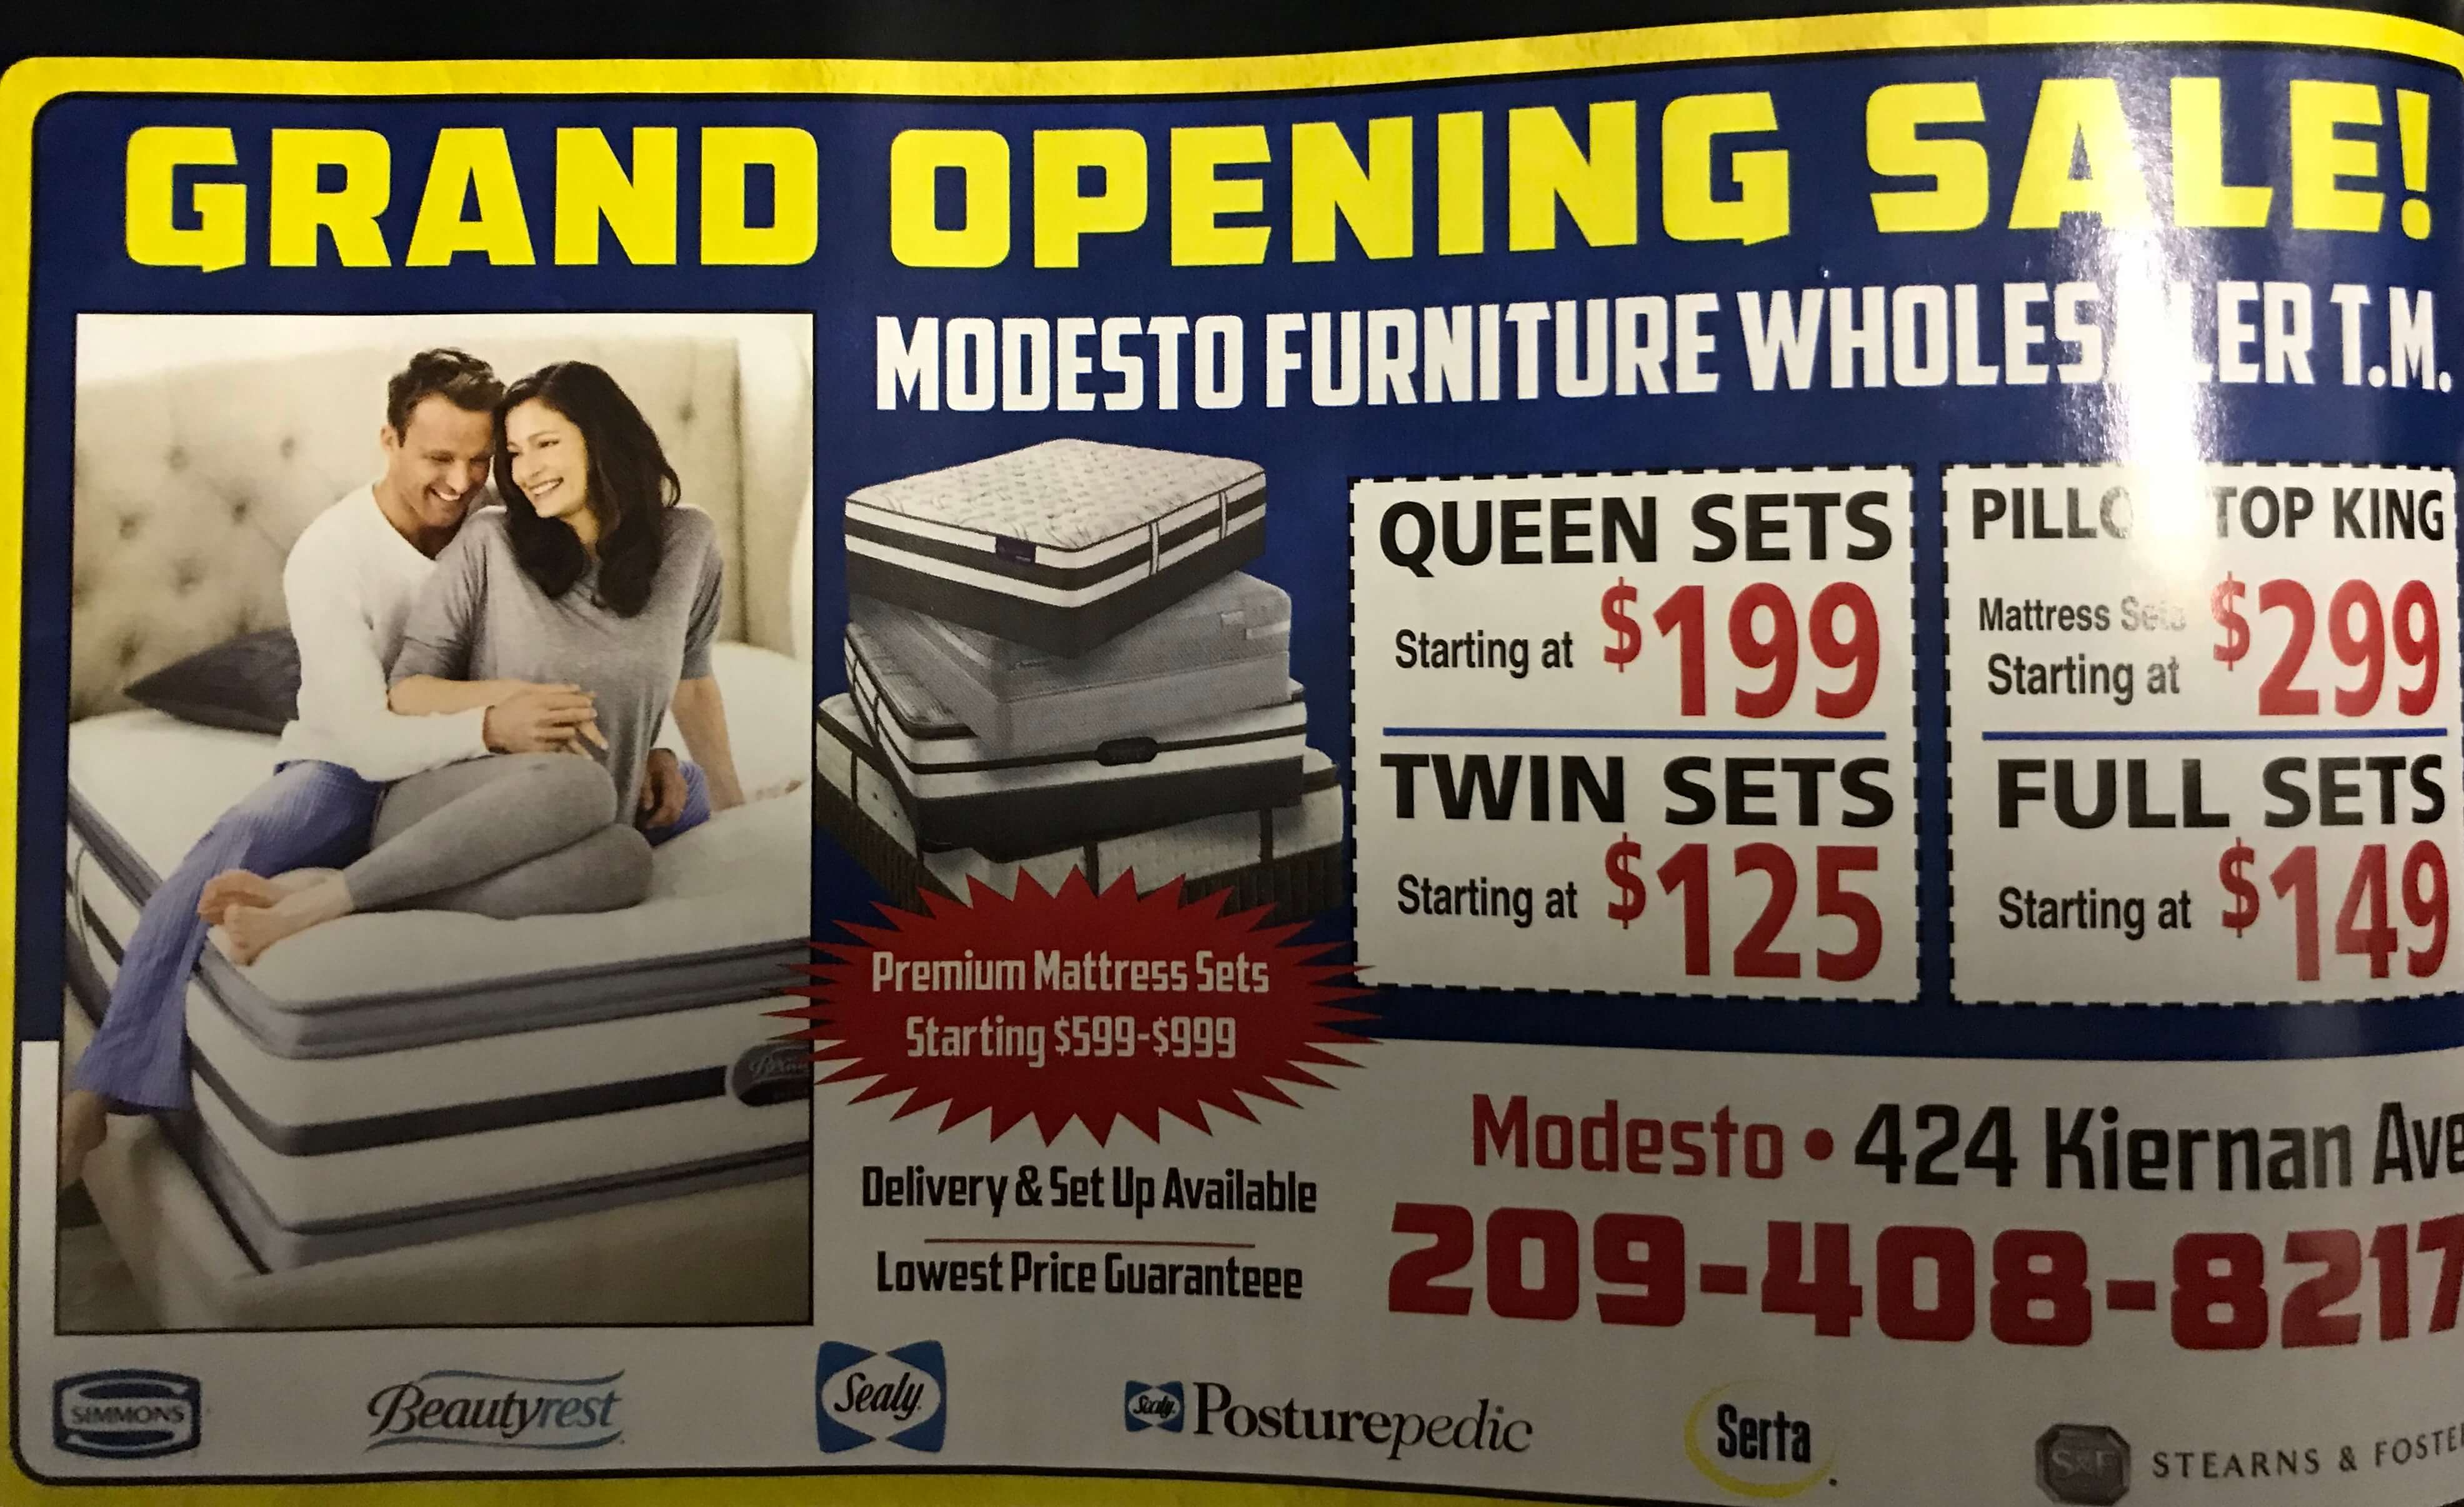 Professional Mattress Bedding And Furniture Store In Modesto Ca 95356